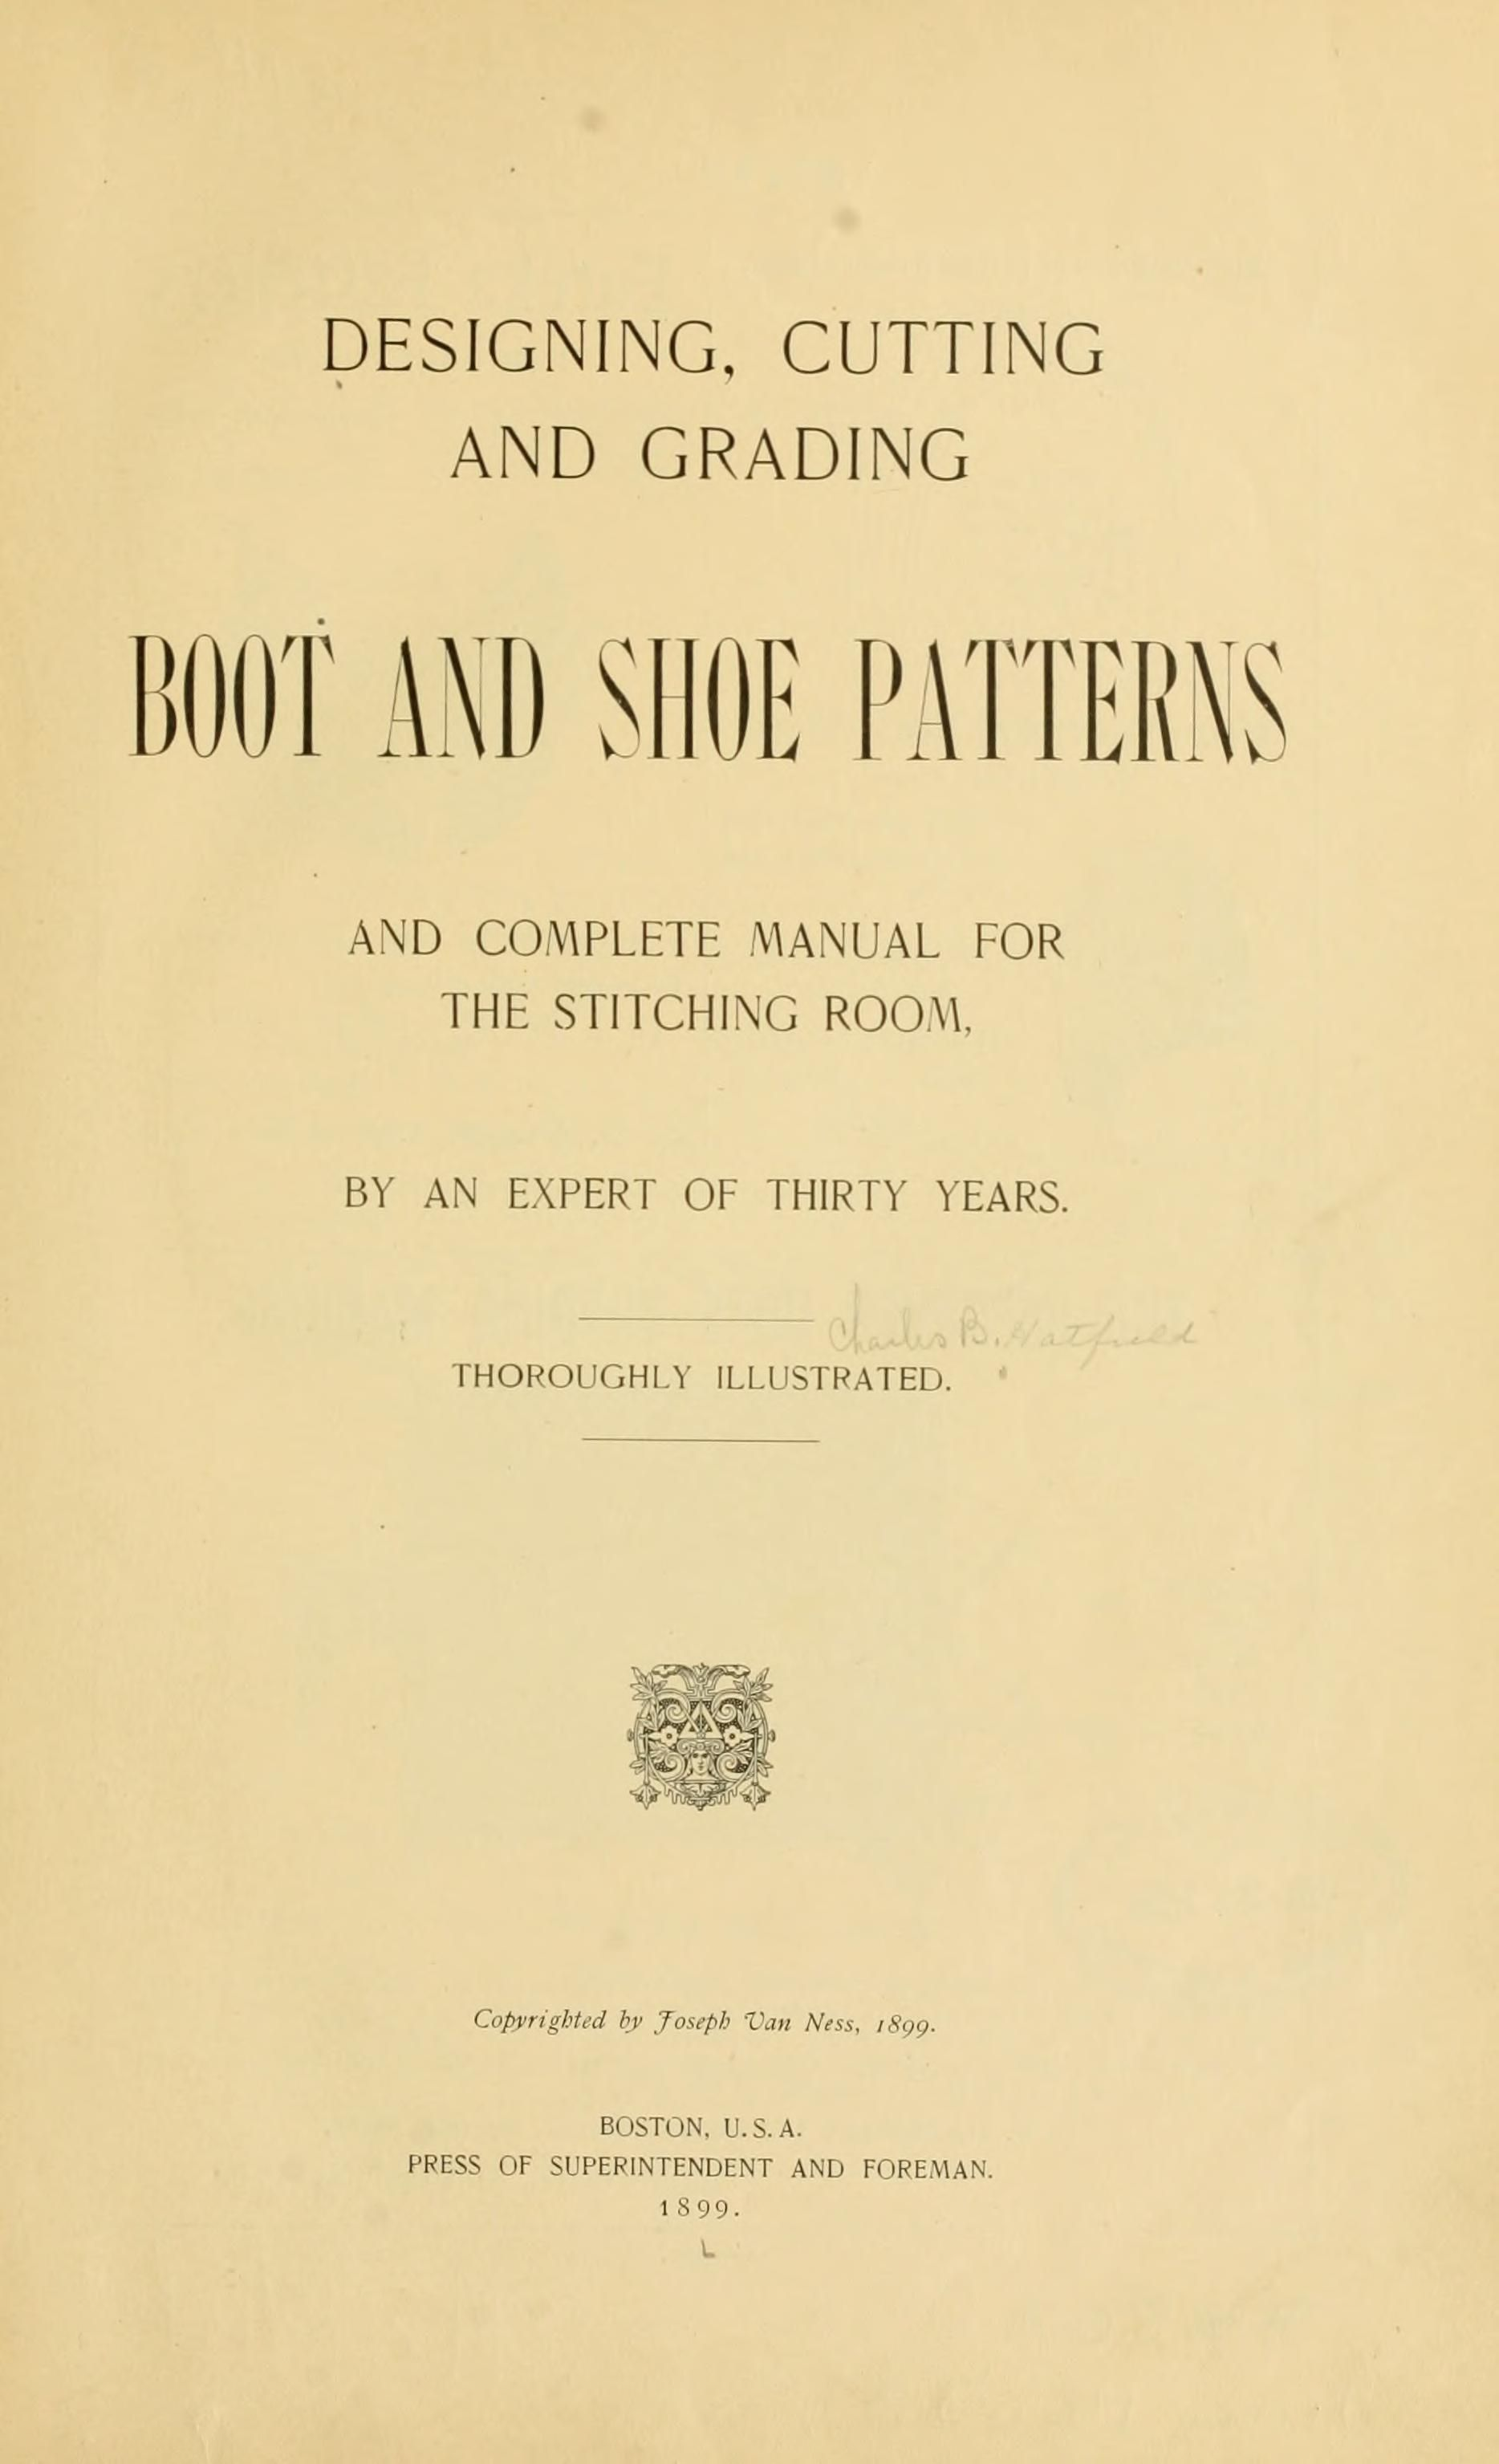 Designing, cutting and grading boot and shoe patterns, and complete manual  for the stitching